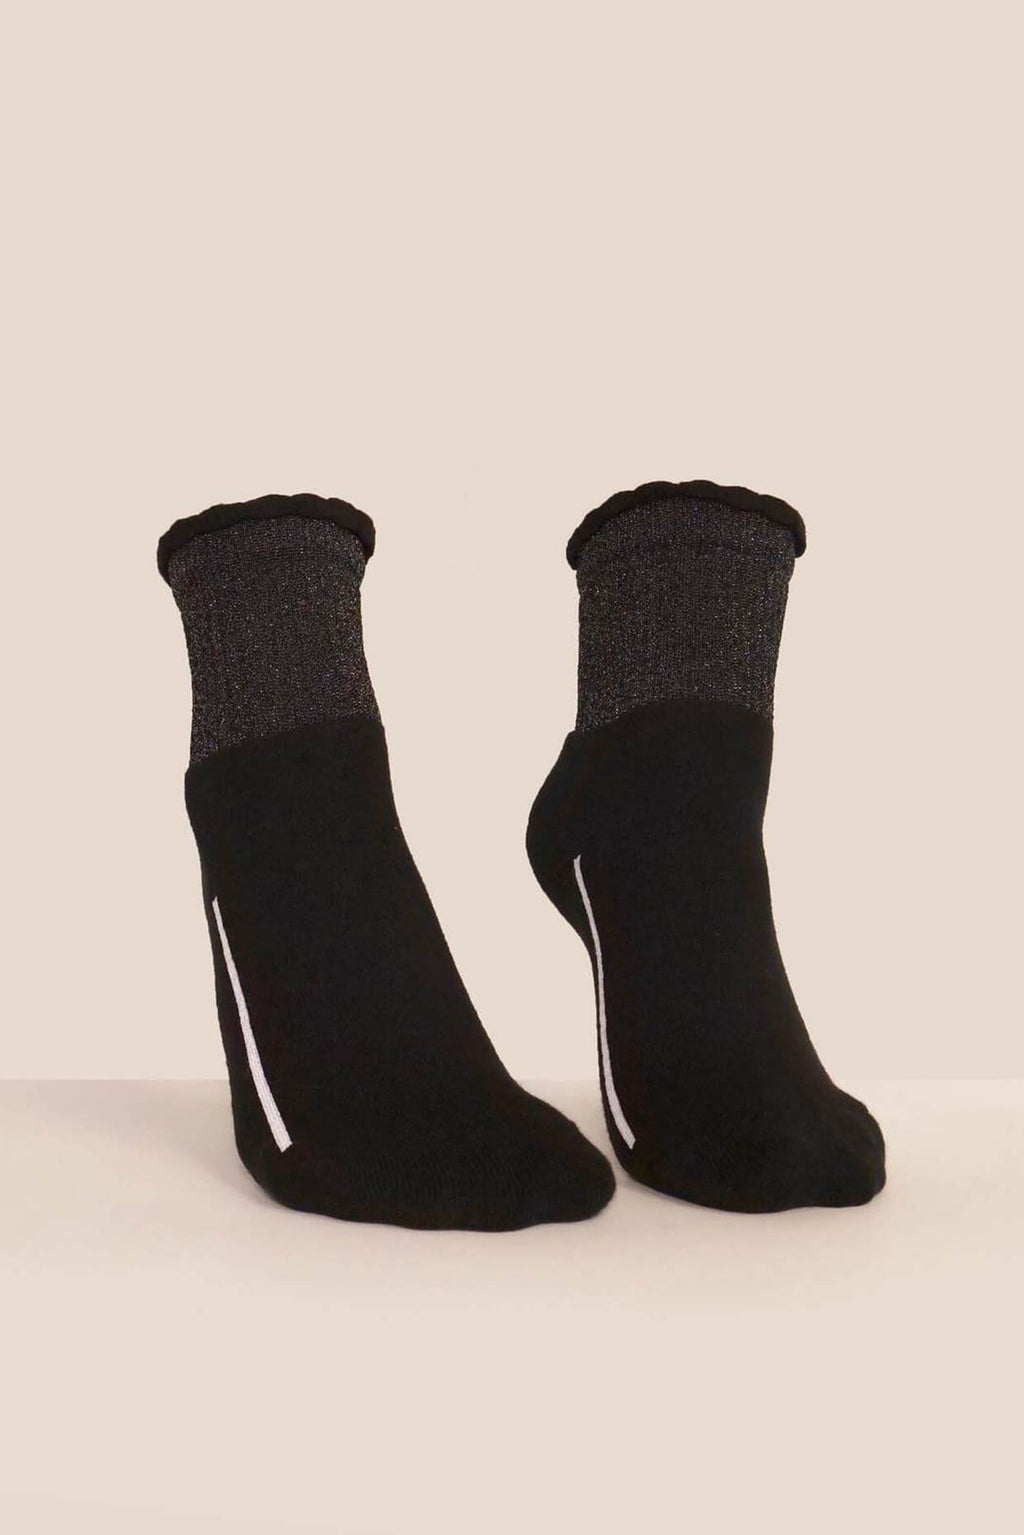 Socks | Cotton Lurex | Black Sparkle